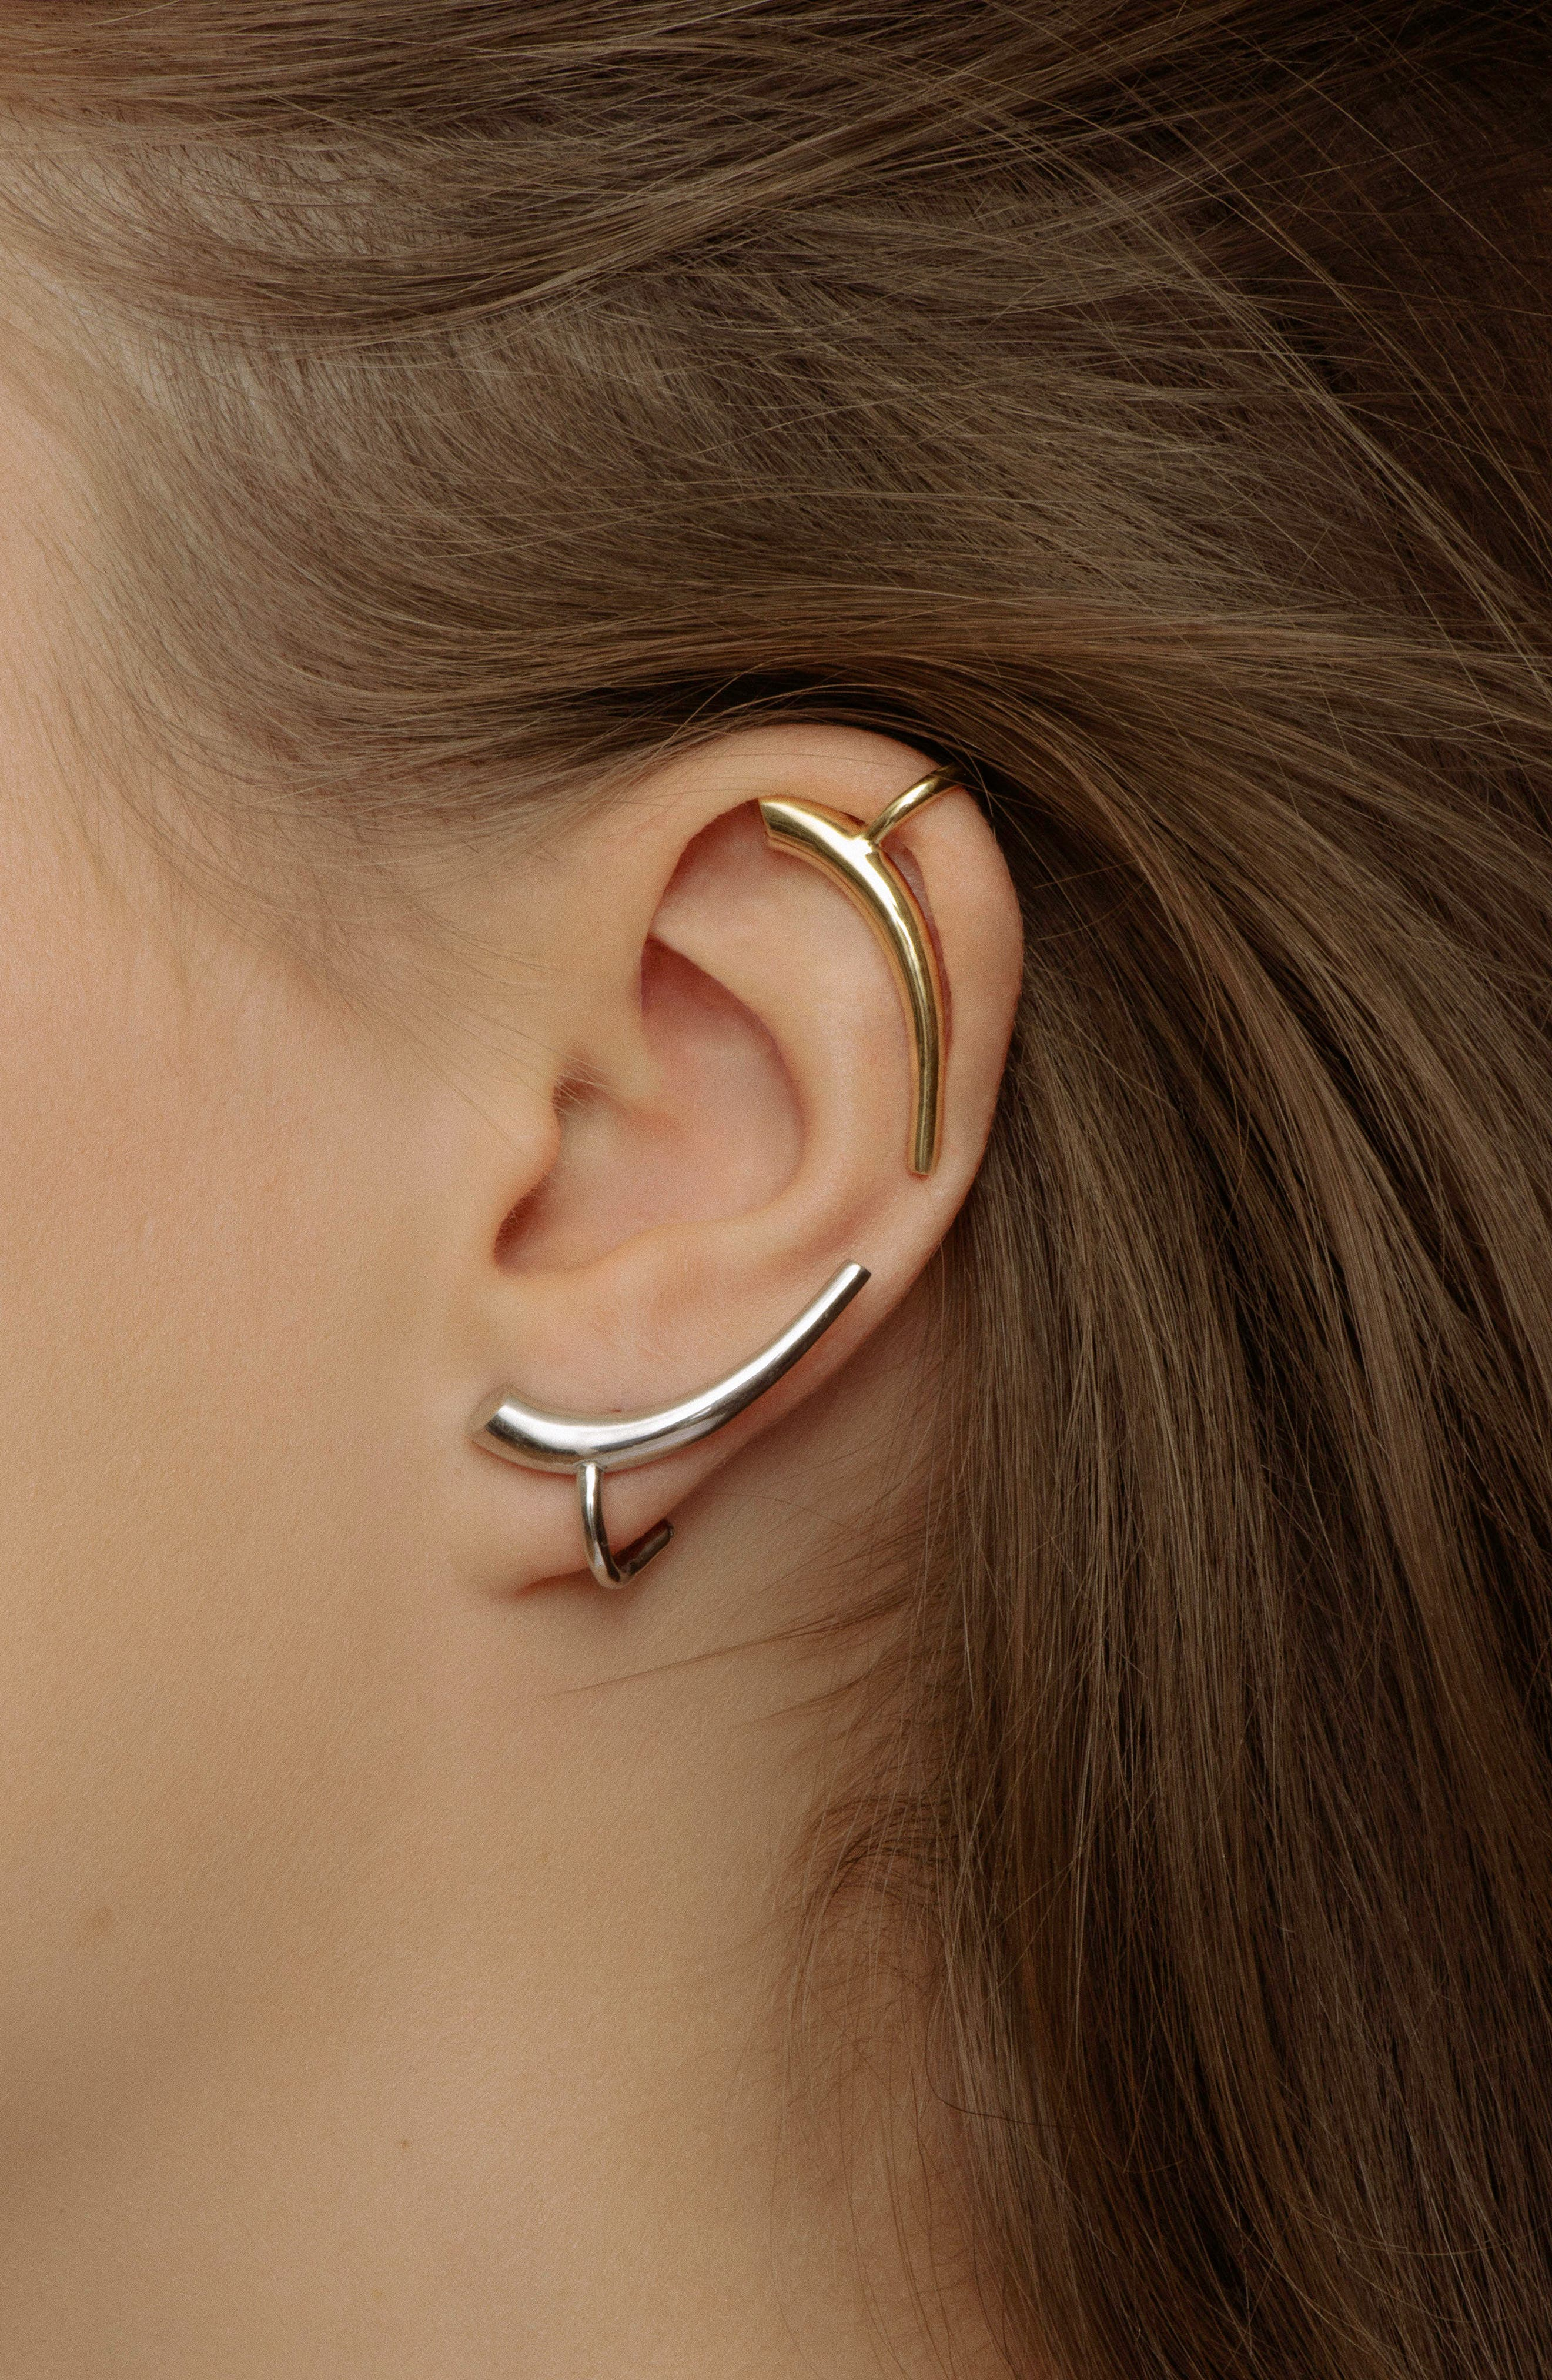 Helix Silver Ear Cuffs,                             Alternate thumbnail 2, color,                             Silver